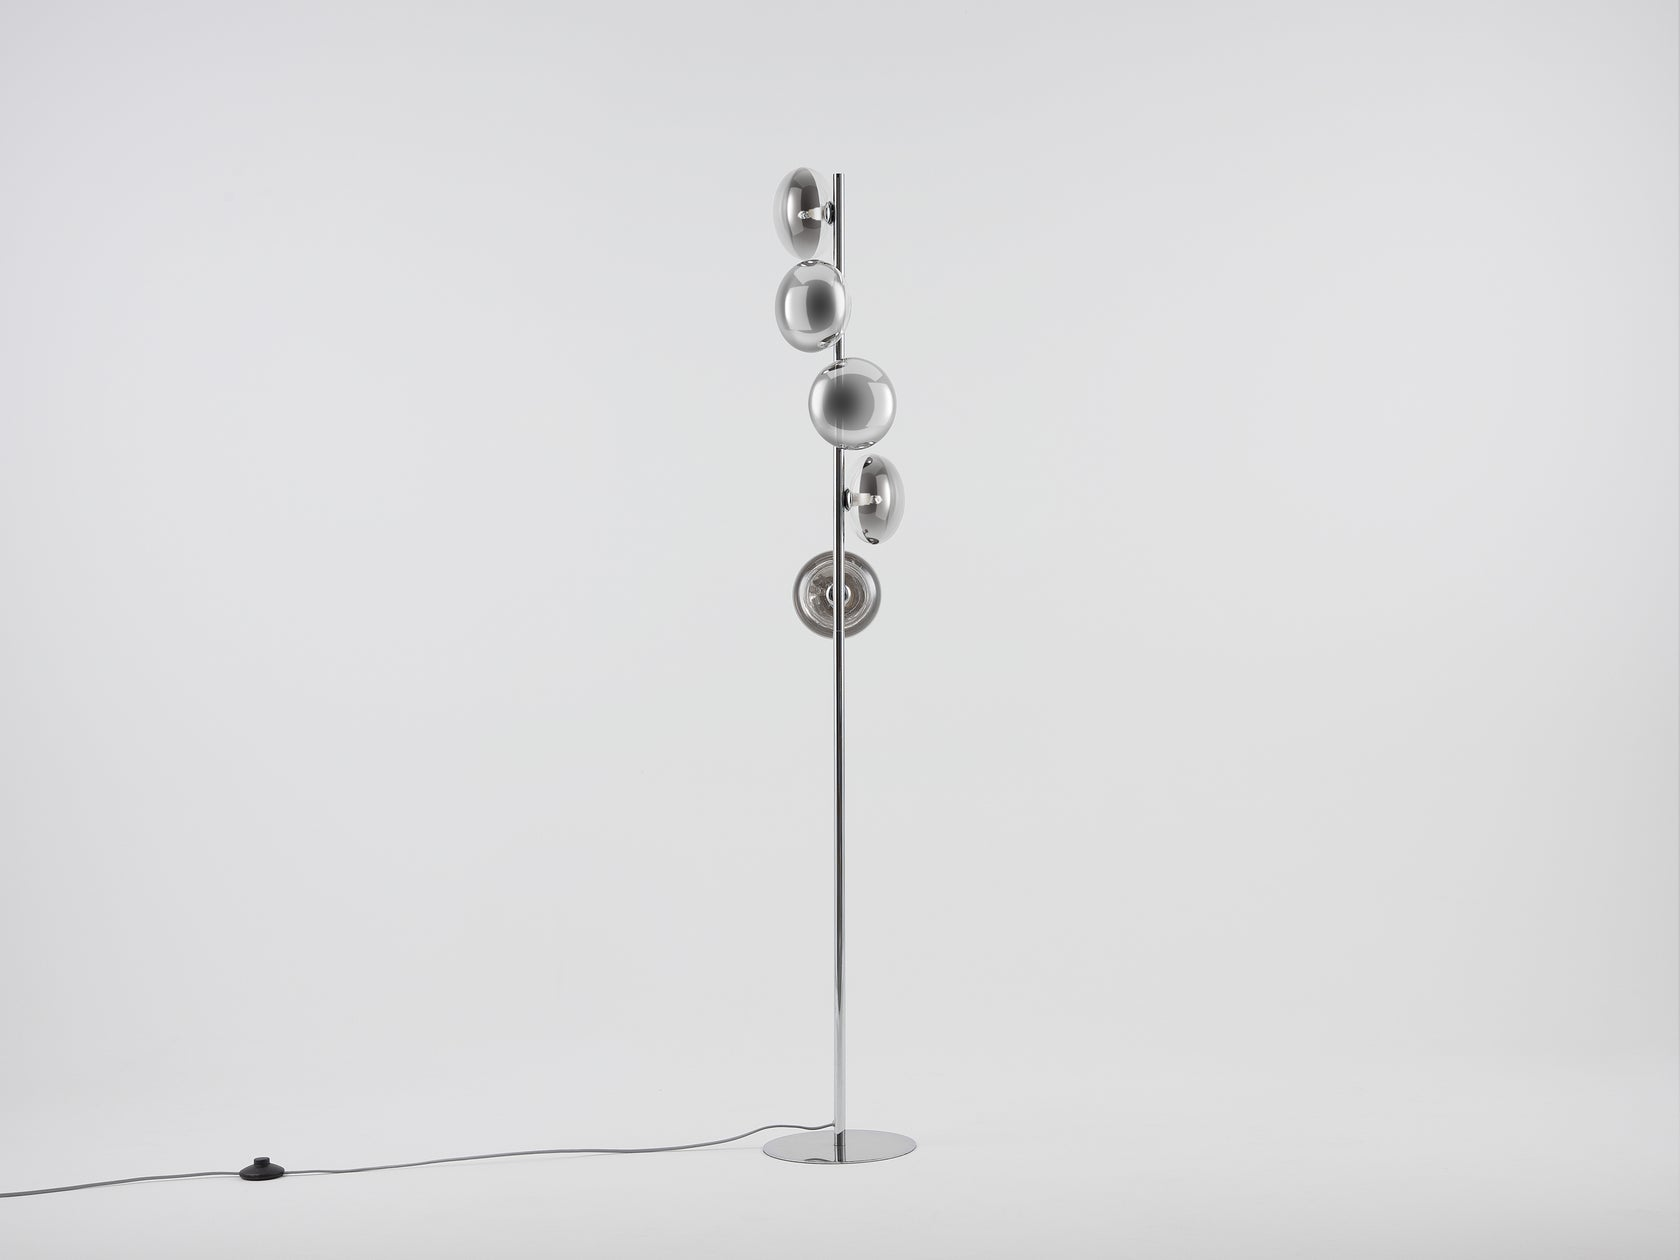 Reflective floor lamp chrome | off | houseof.com